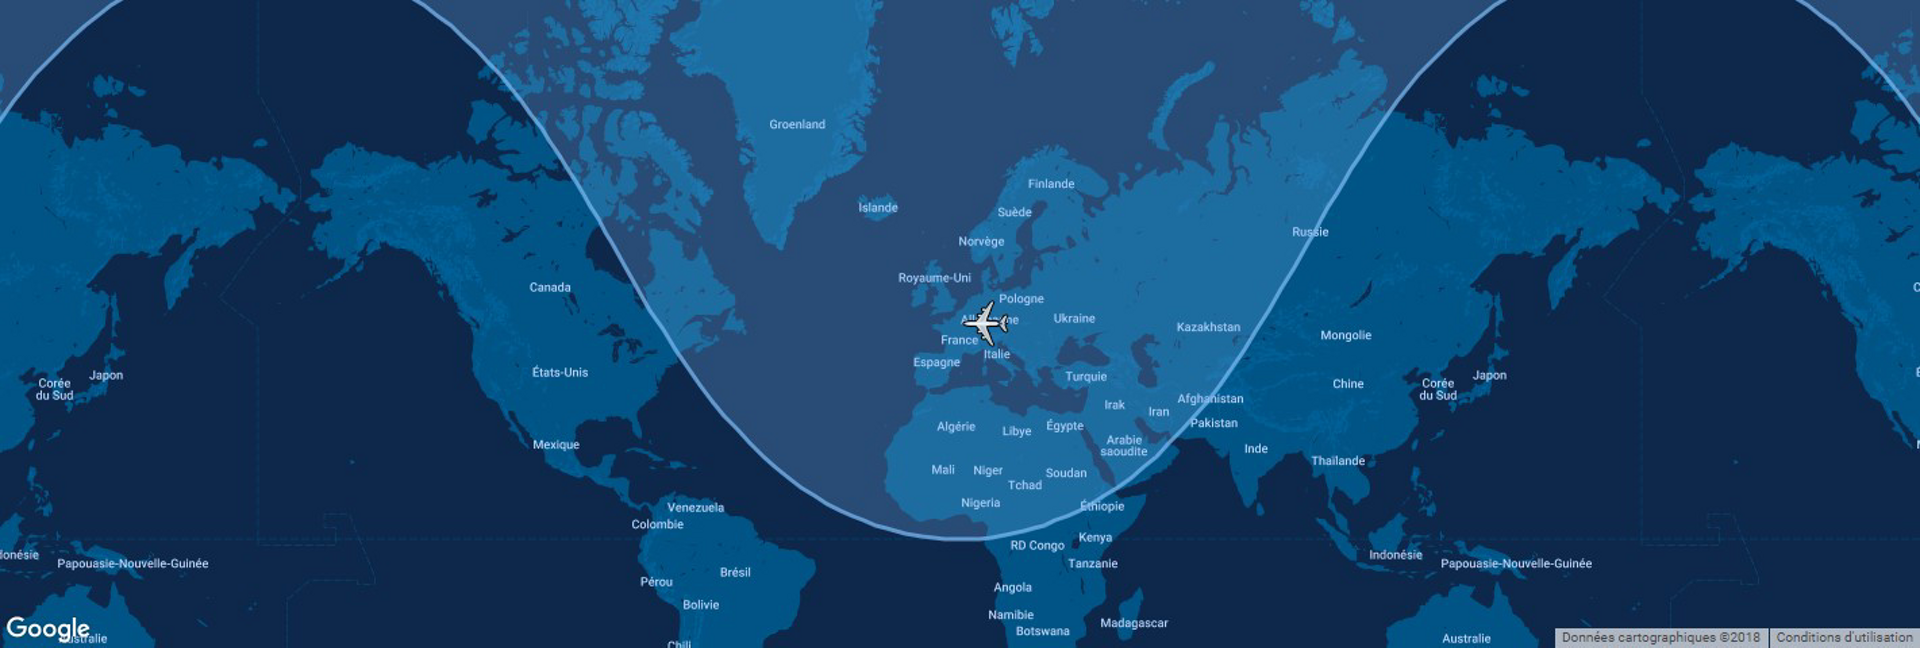 Overlaid on a global map, the typical range for Airbus' A220-100 commercial aircraft is shown in this diagram.